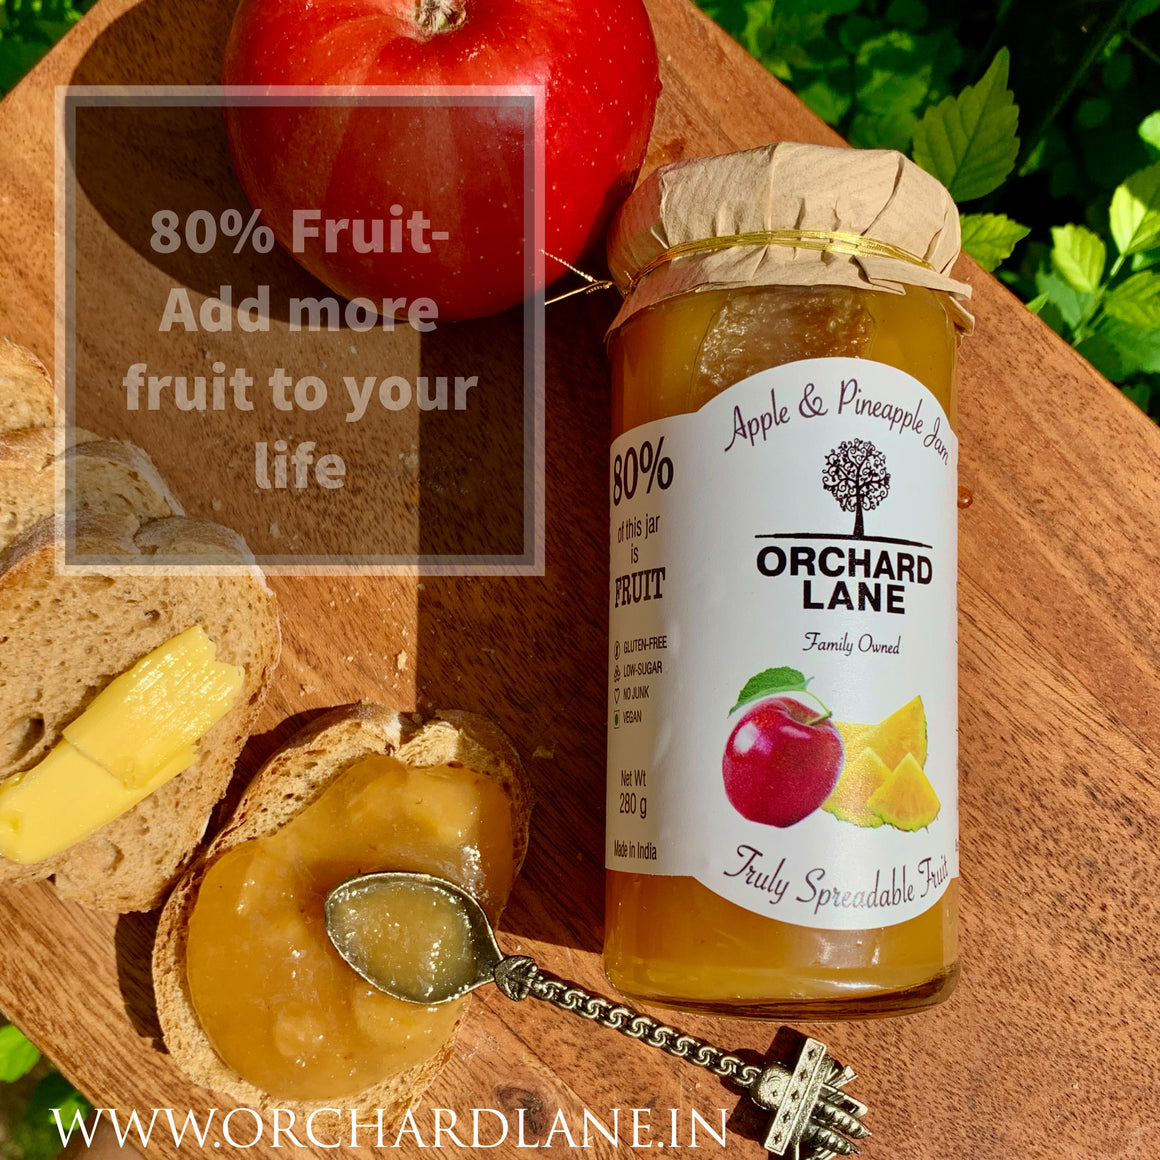 Apple & Pineapple Jam - 80% Fruit, Low Sugar, No Preservatives, No added colours or flavours.